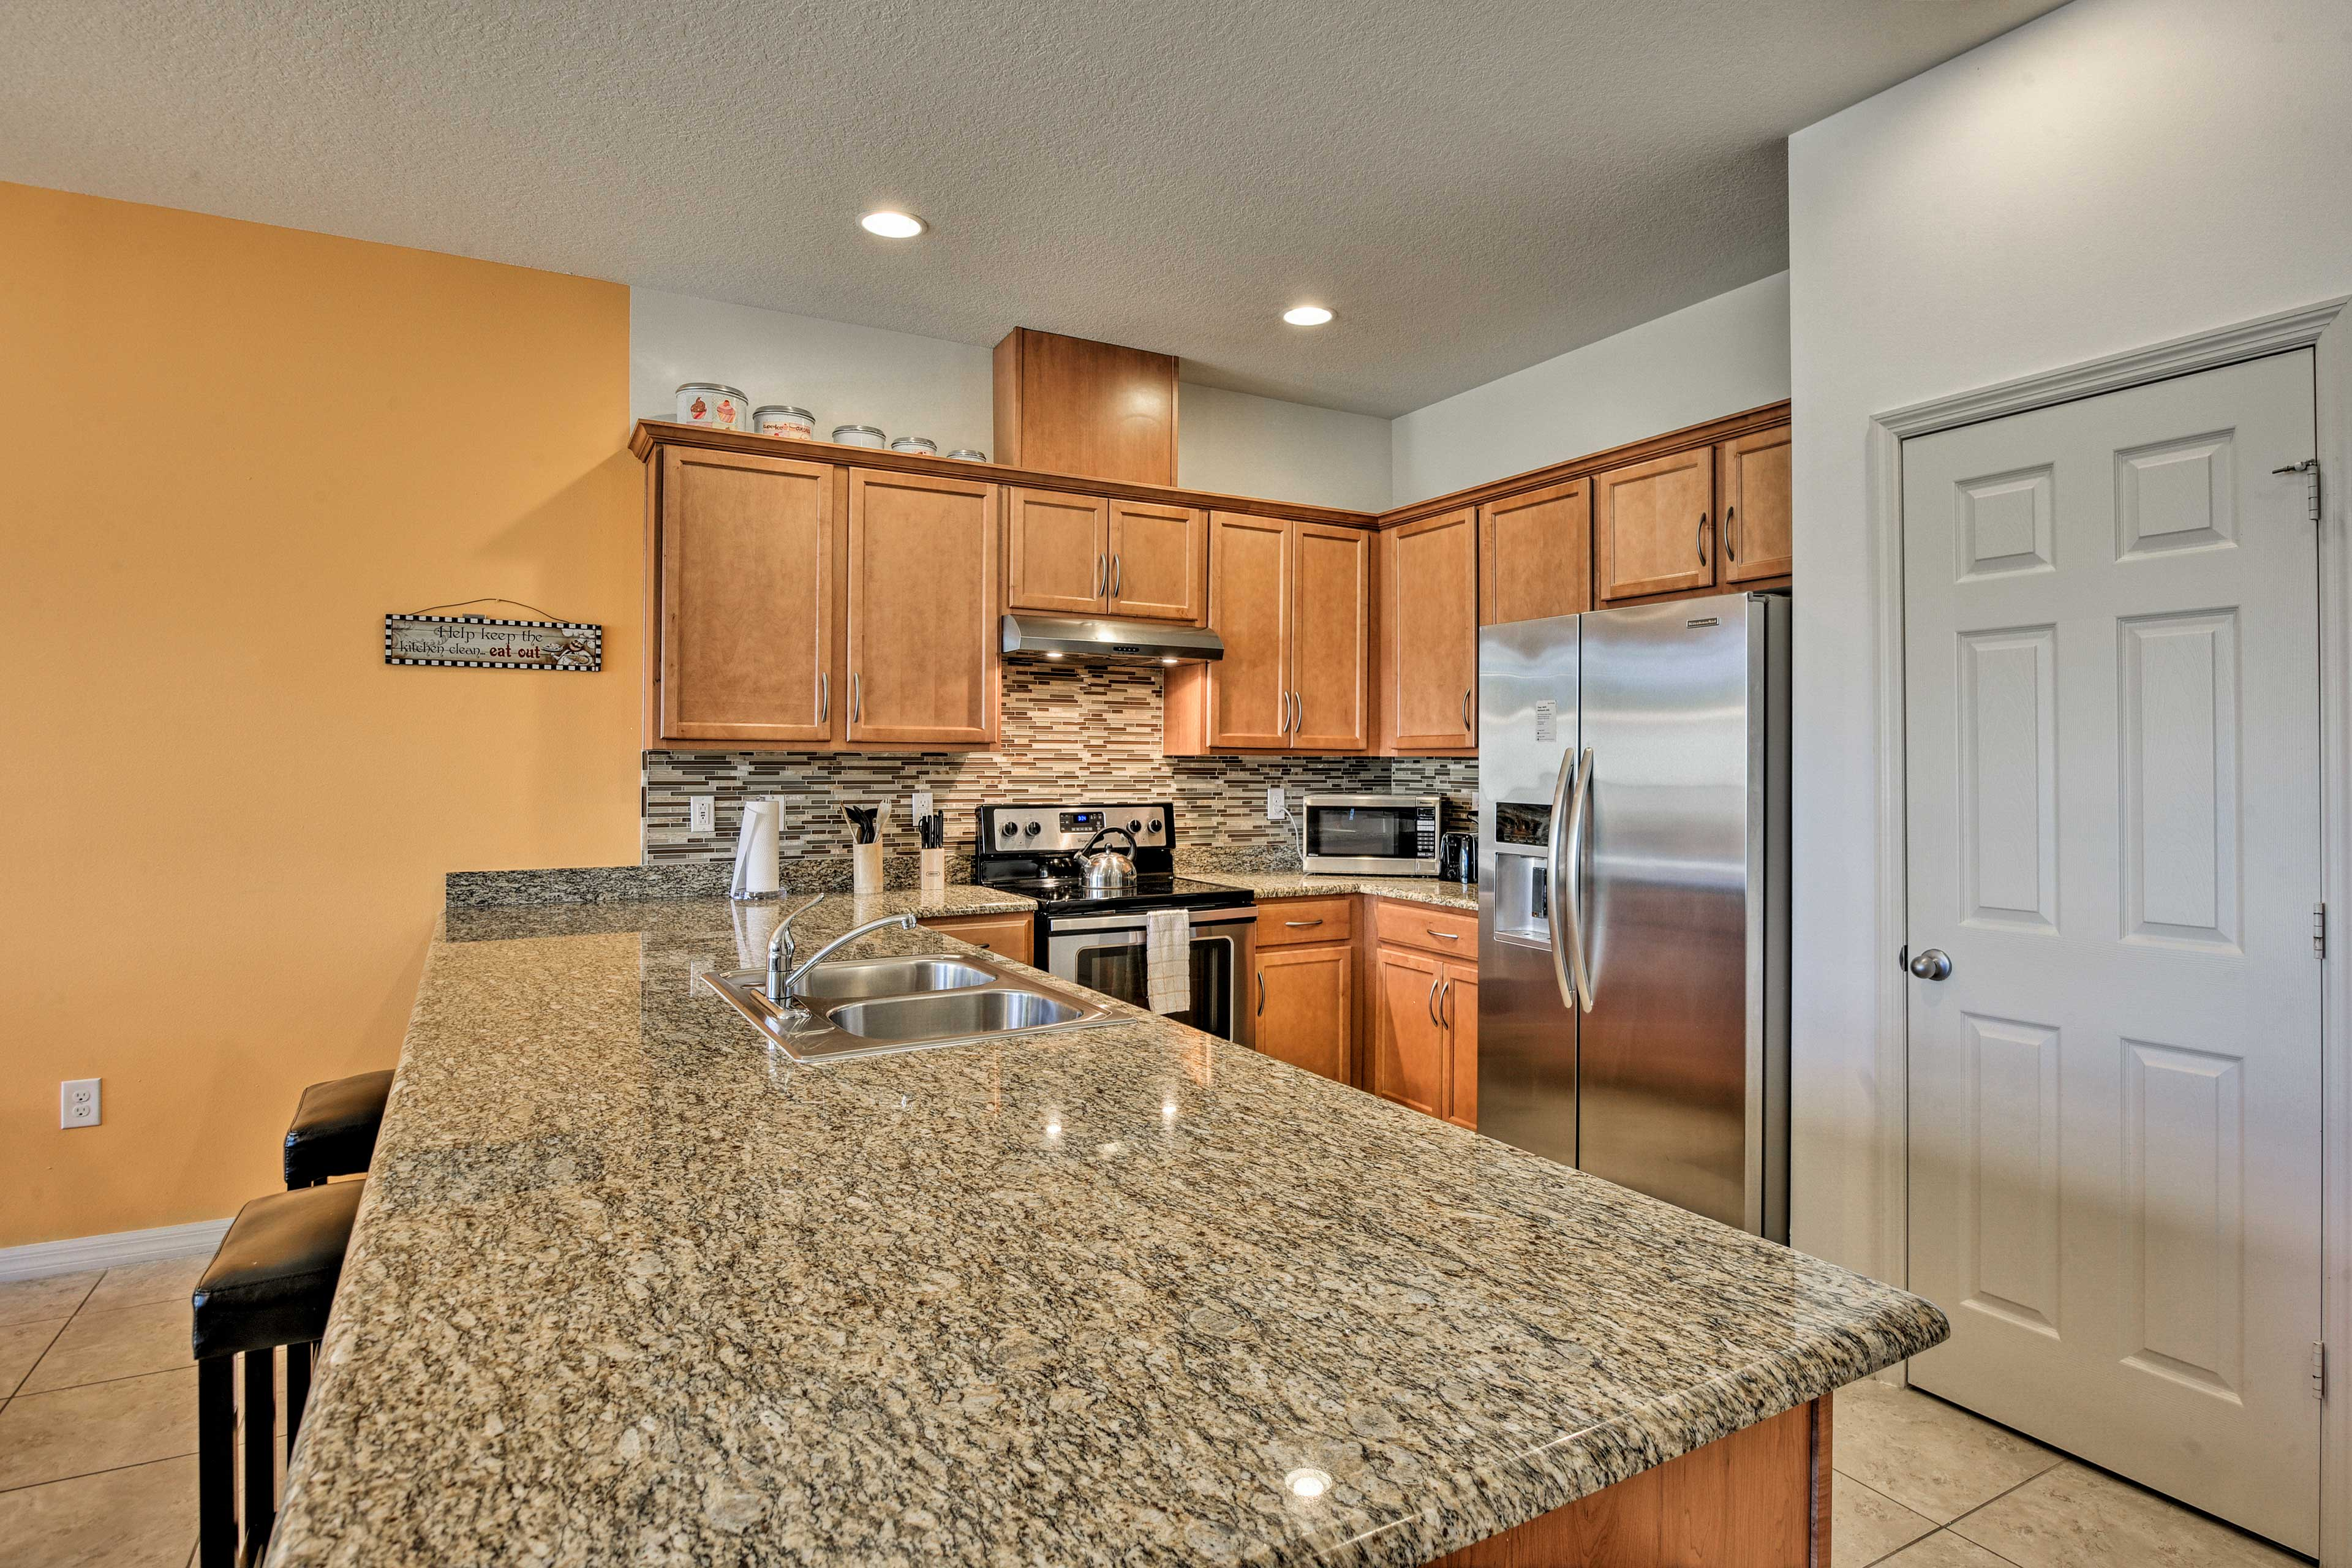 Long, sleek countertops make it easy to slice and dice.